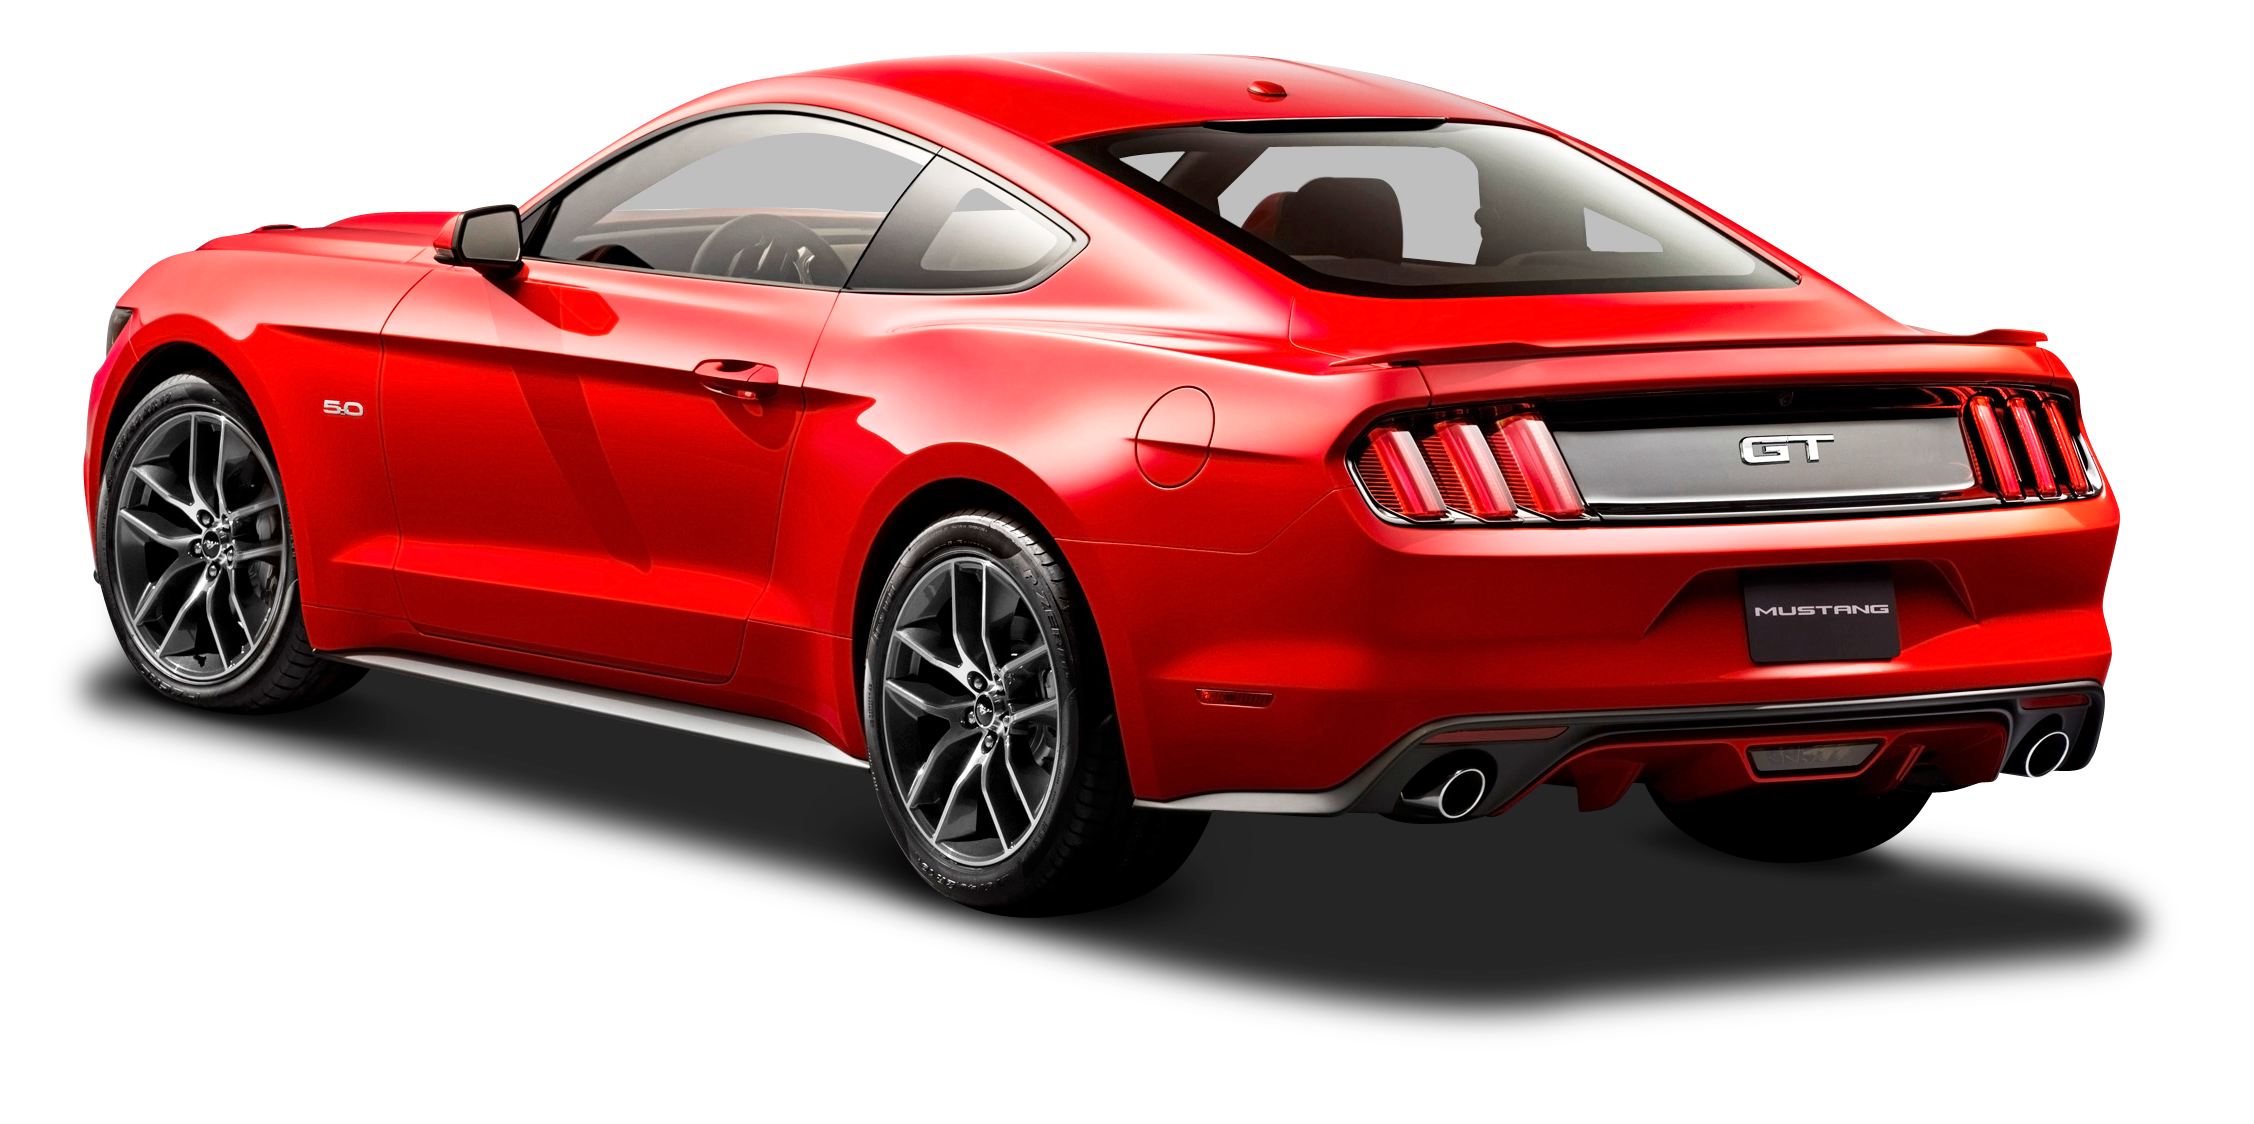 Download Ford Mustang Red Car Back Side PNG Image for Free.